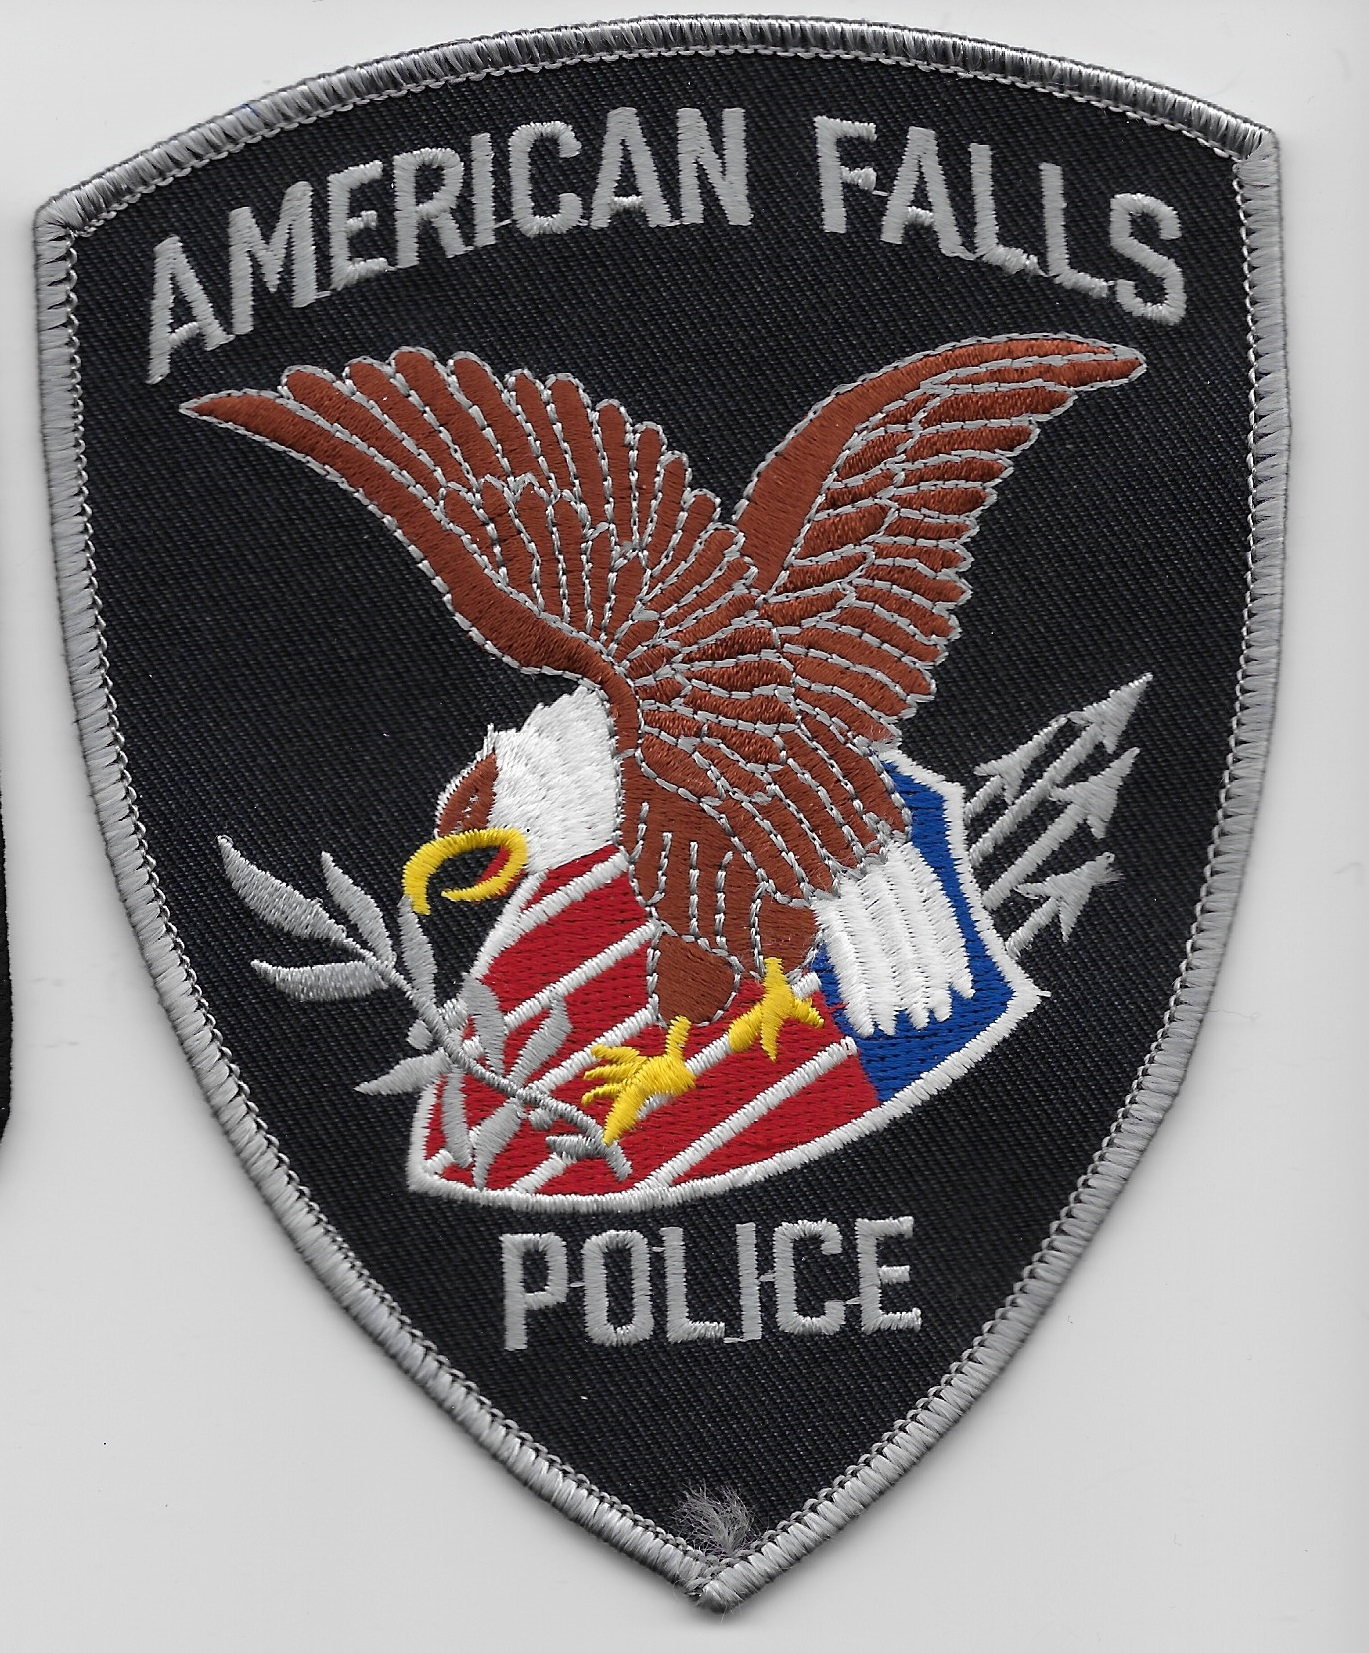 American Falls Police ID Gray patch